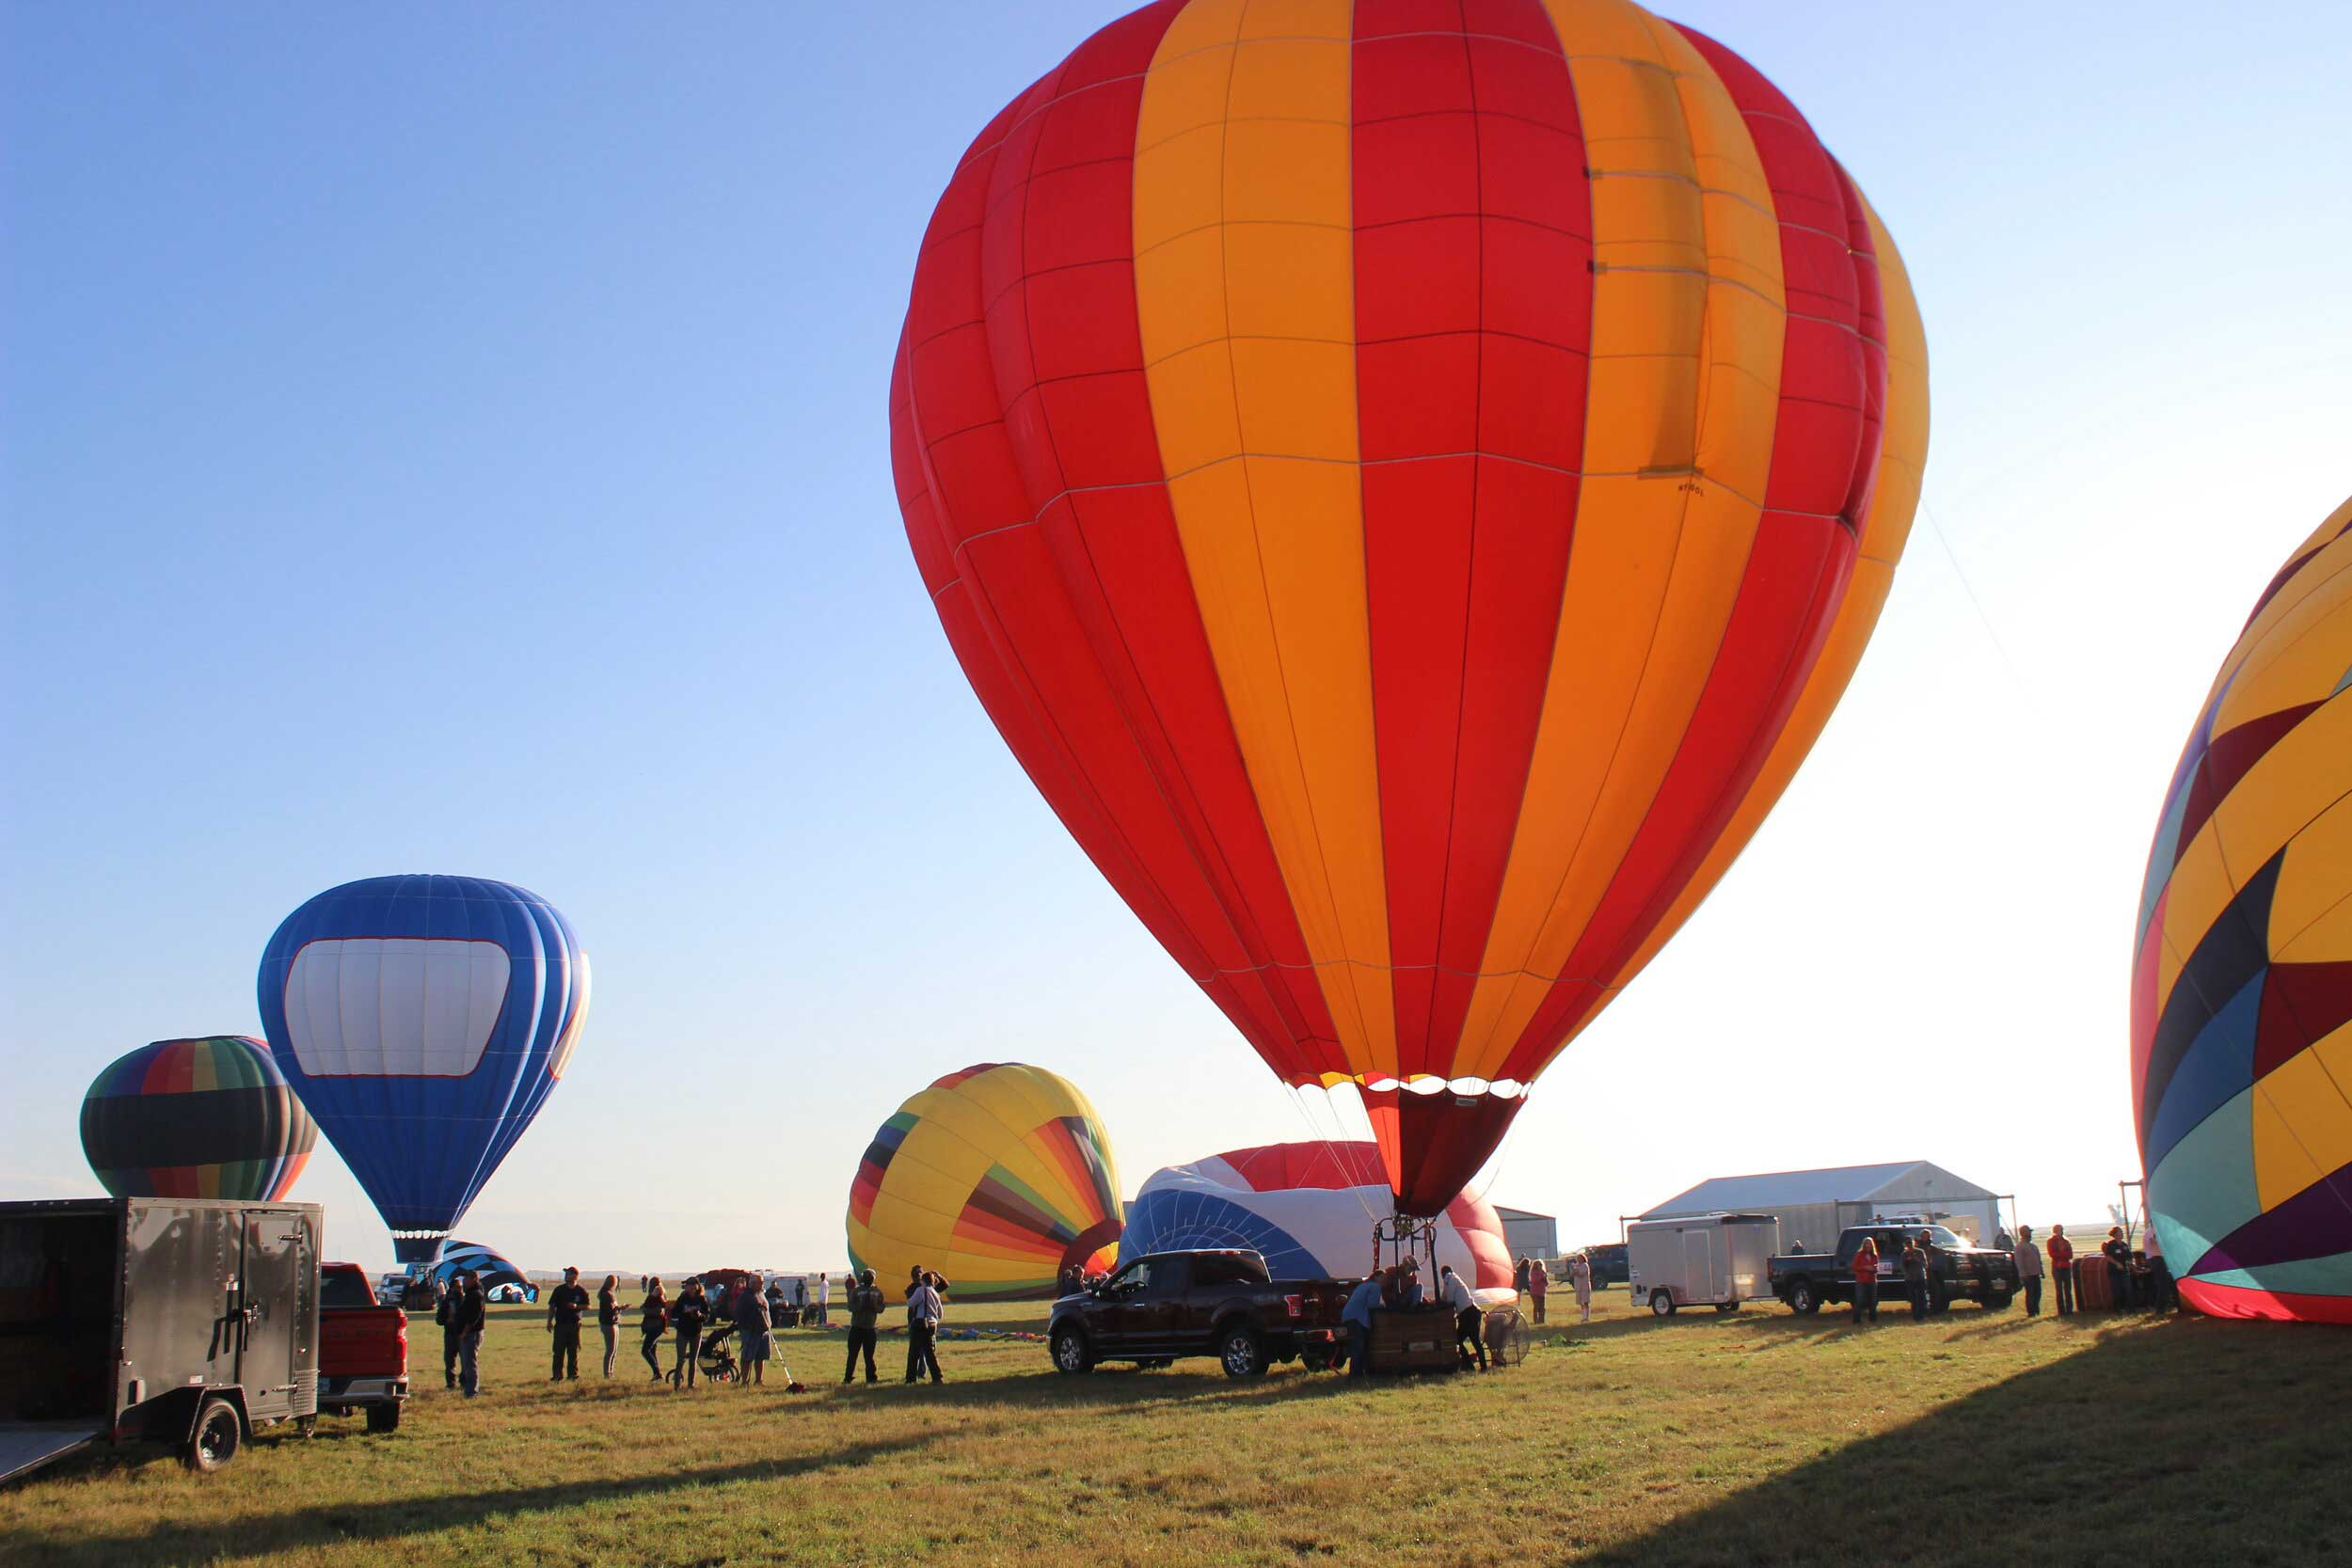 Fall River Hot Air Balloon Festival